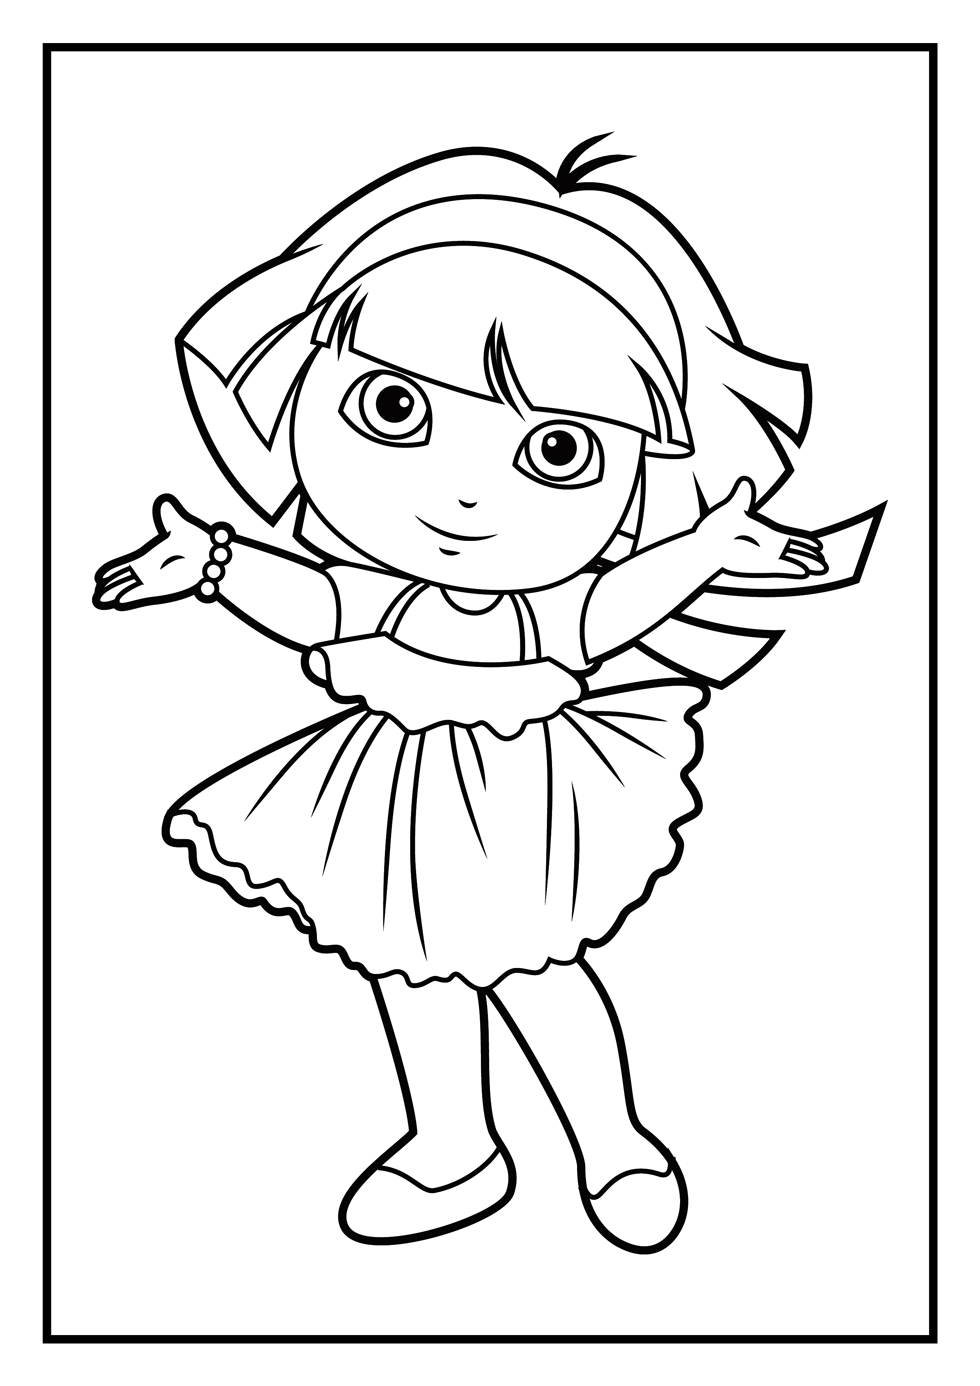 free coloring pages for dora - photo#31